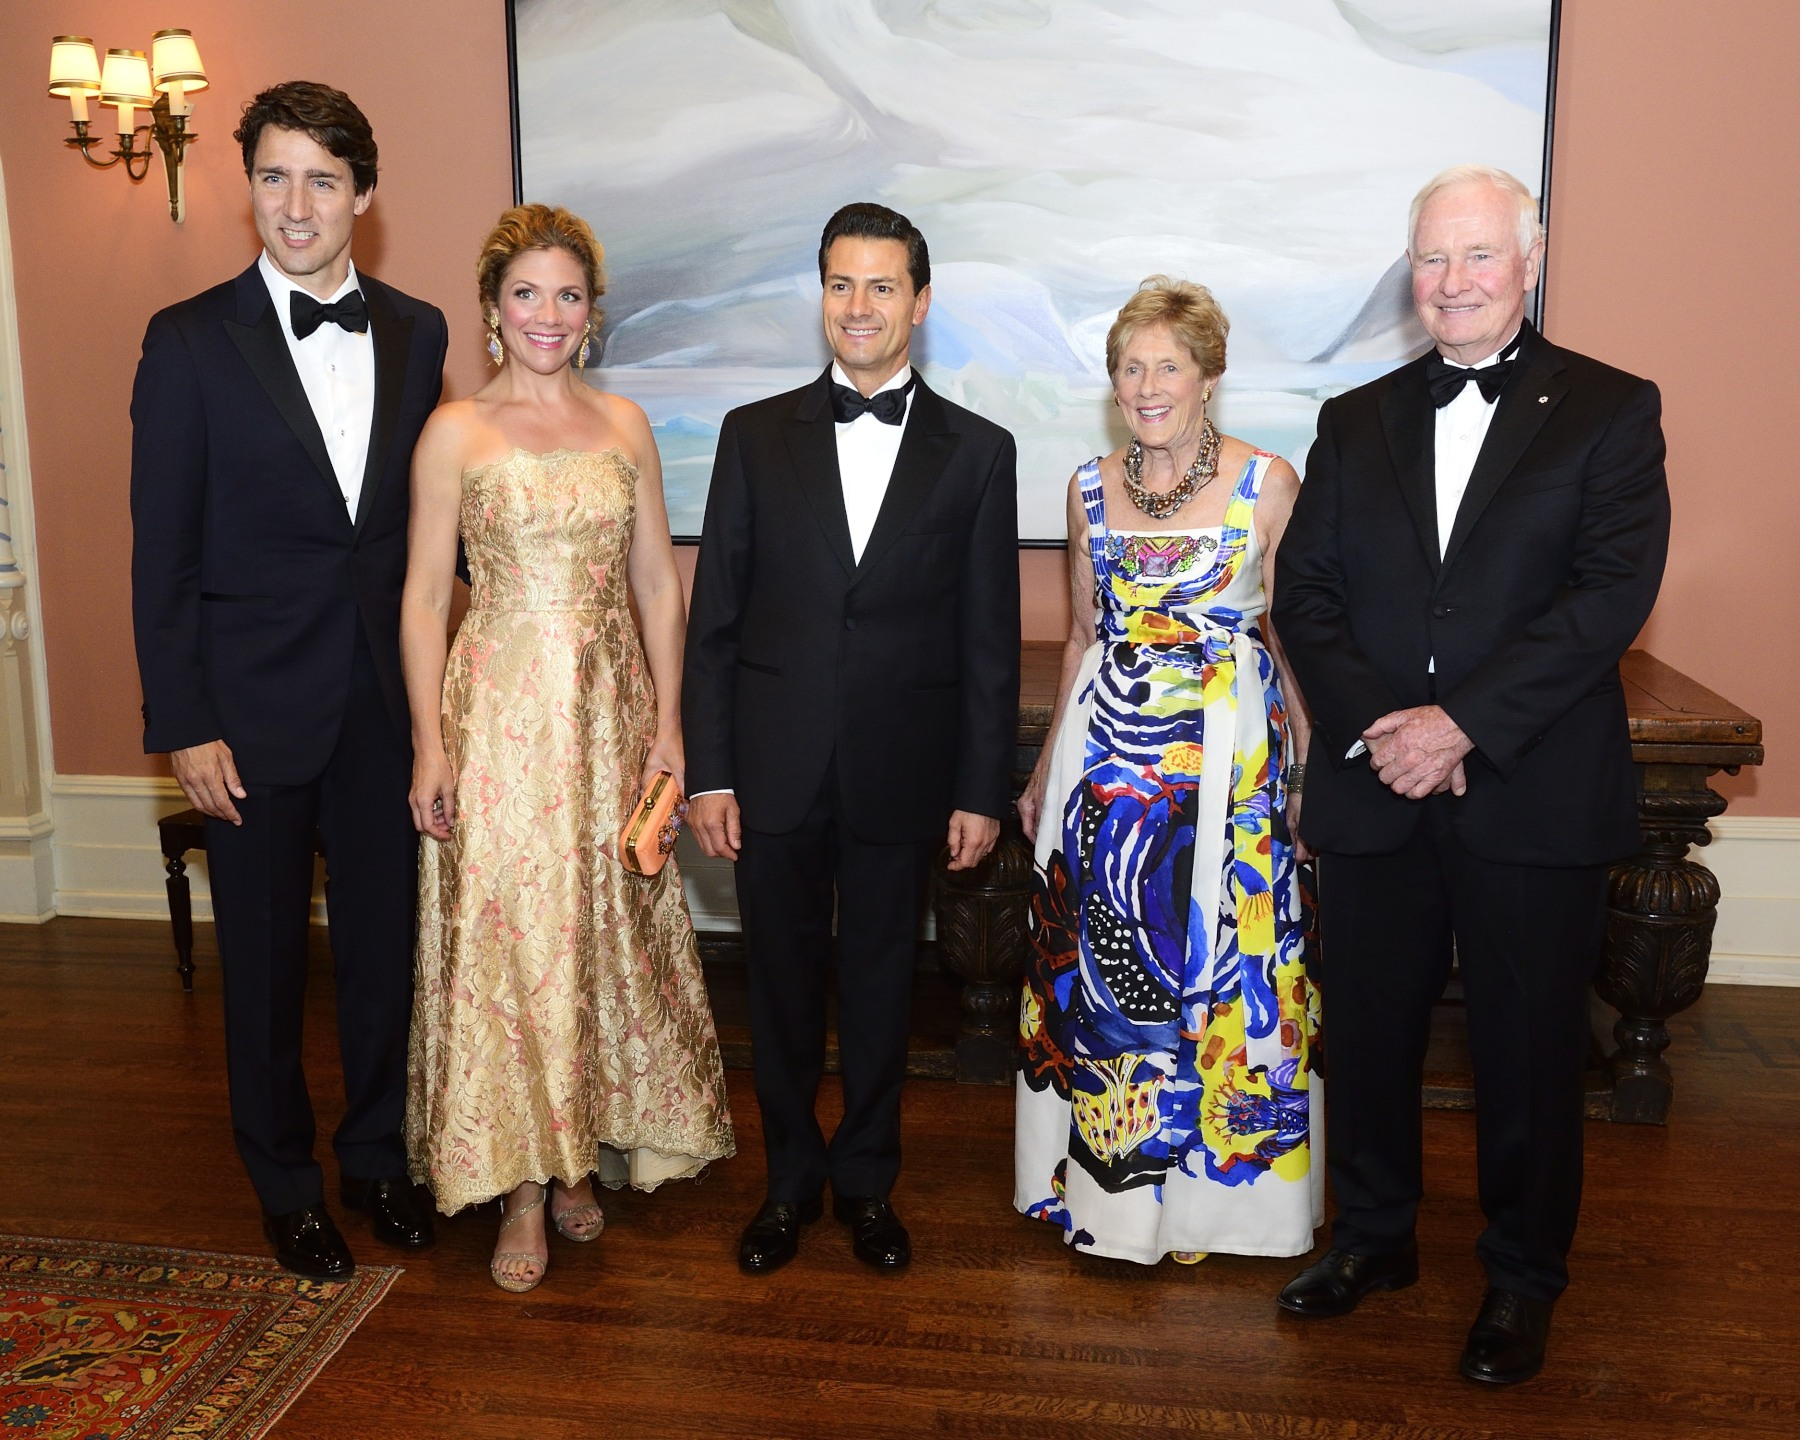 An official photo was taken prior to the State dinner. From left to right: Prime Minister Justin Trudeau, Madame Sophie Grégoire Trudeau, President Peña Nieto, Mrs. Sharon Johnston and Governor General David Johnston.